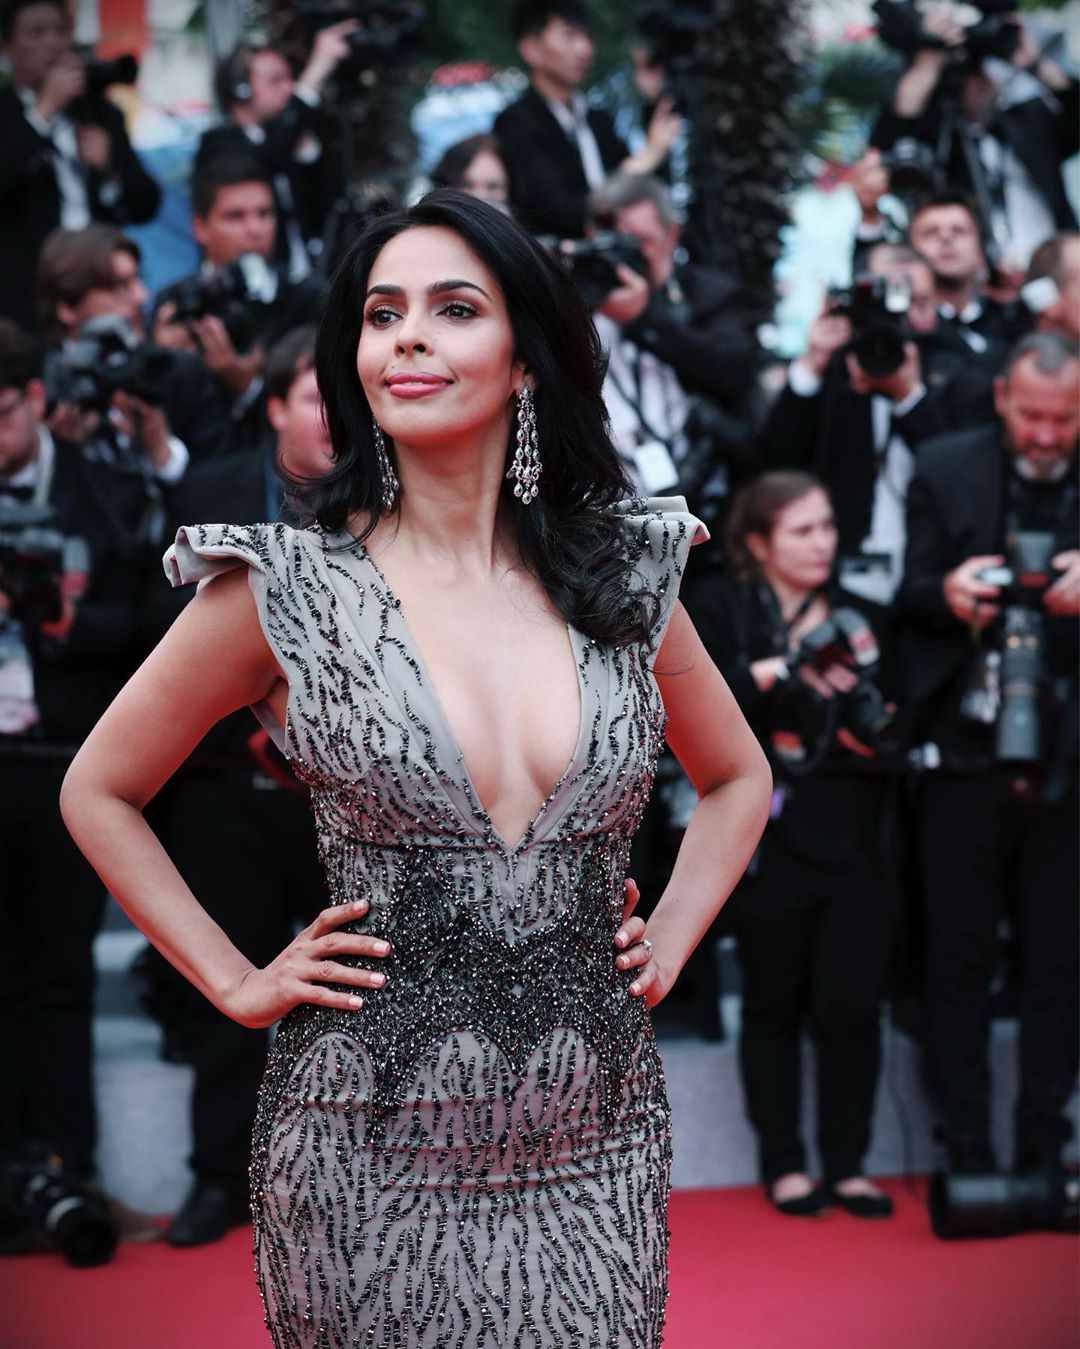 Mallika Sherawat Cannes 2019 HD Photos